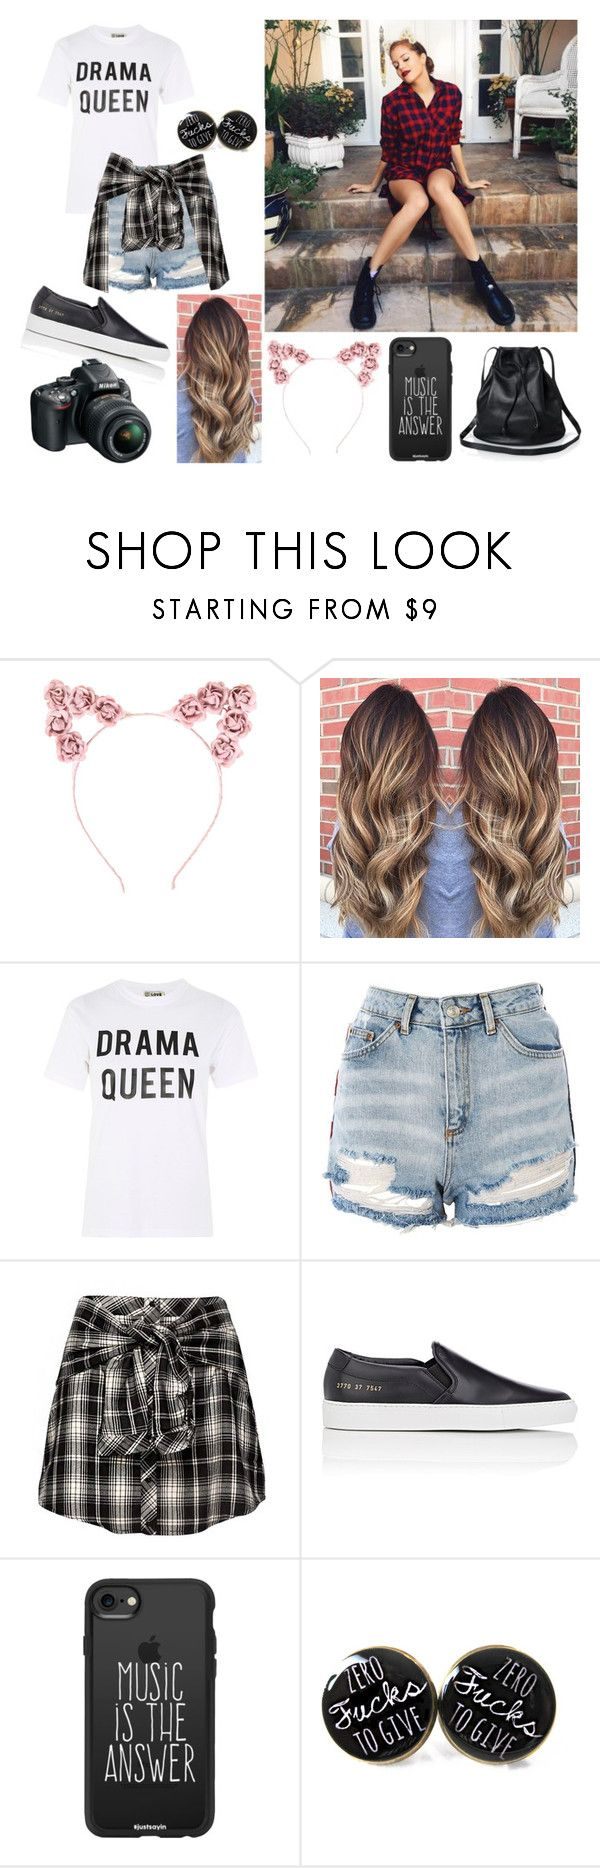 """Mahogany Lox"" by sorrynoturbabe ❤ liked on Polyvore featuring Hot Topic, Love, Topshop, Common Projects, Casetify and Nikon"